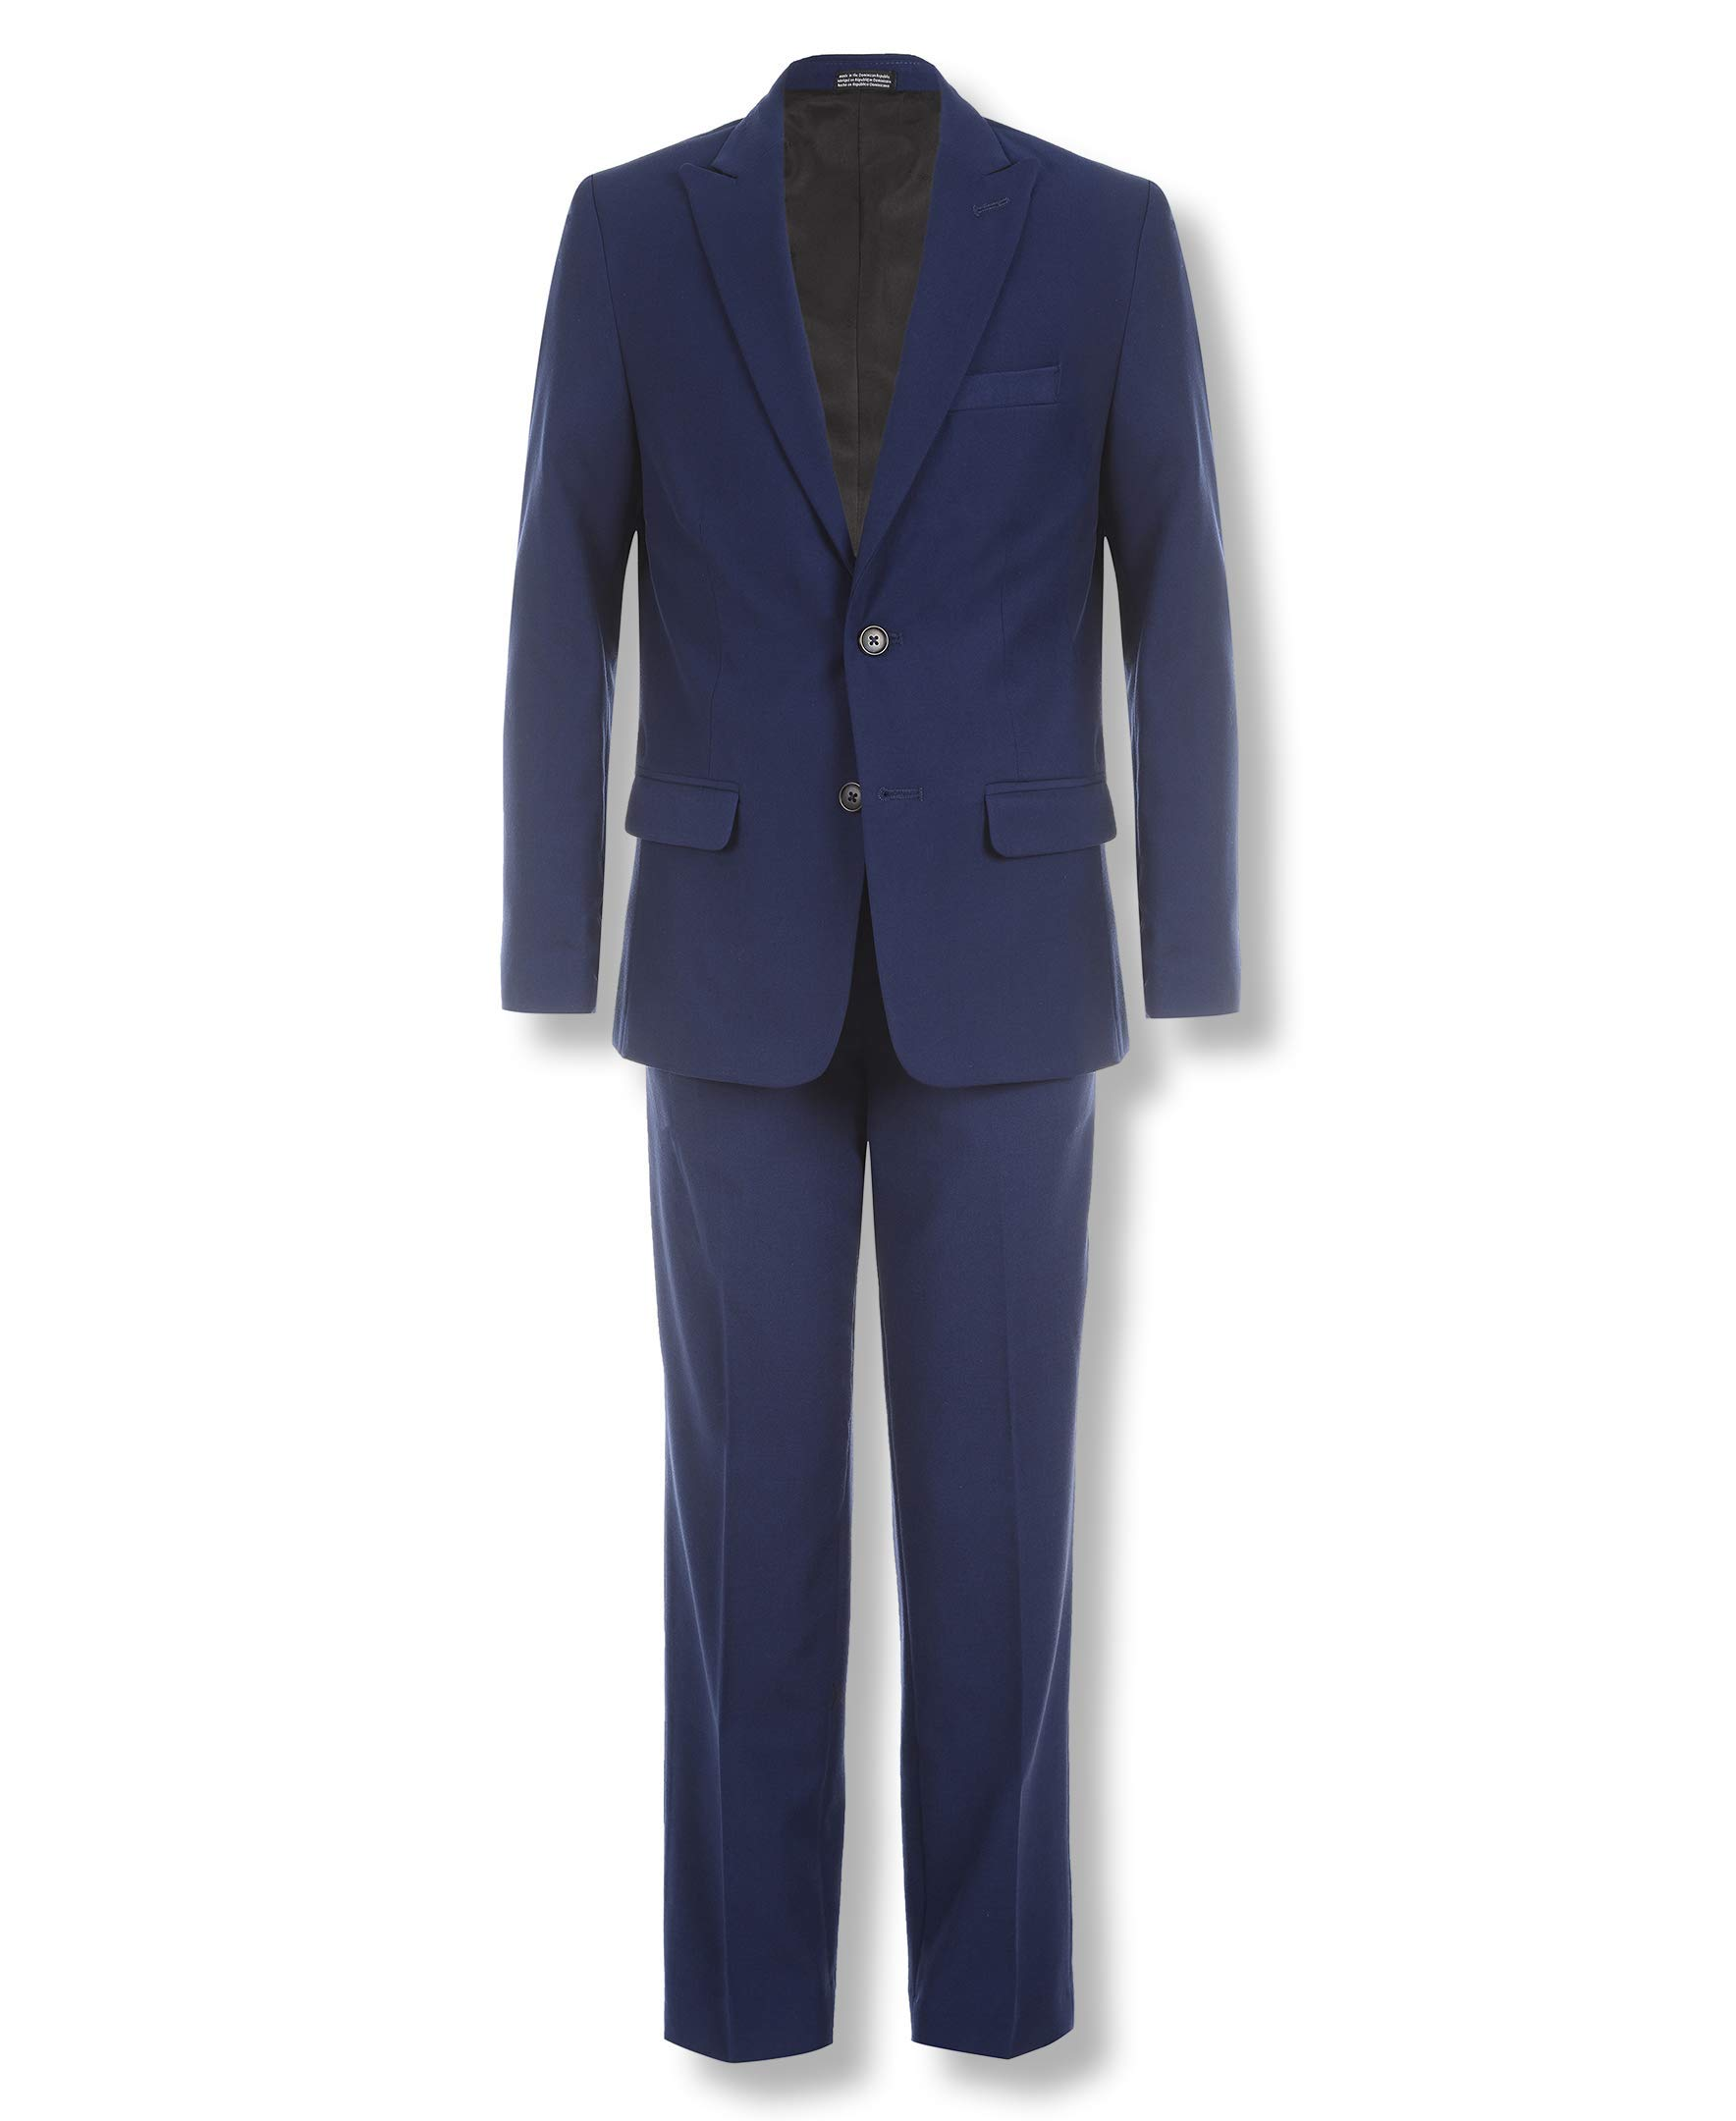 Calvin Klein Big Boys' 2-Piece Formal Suit Set, Infinity Blue, 18